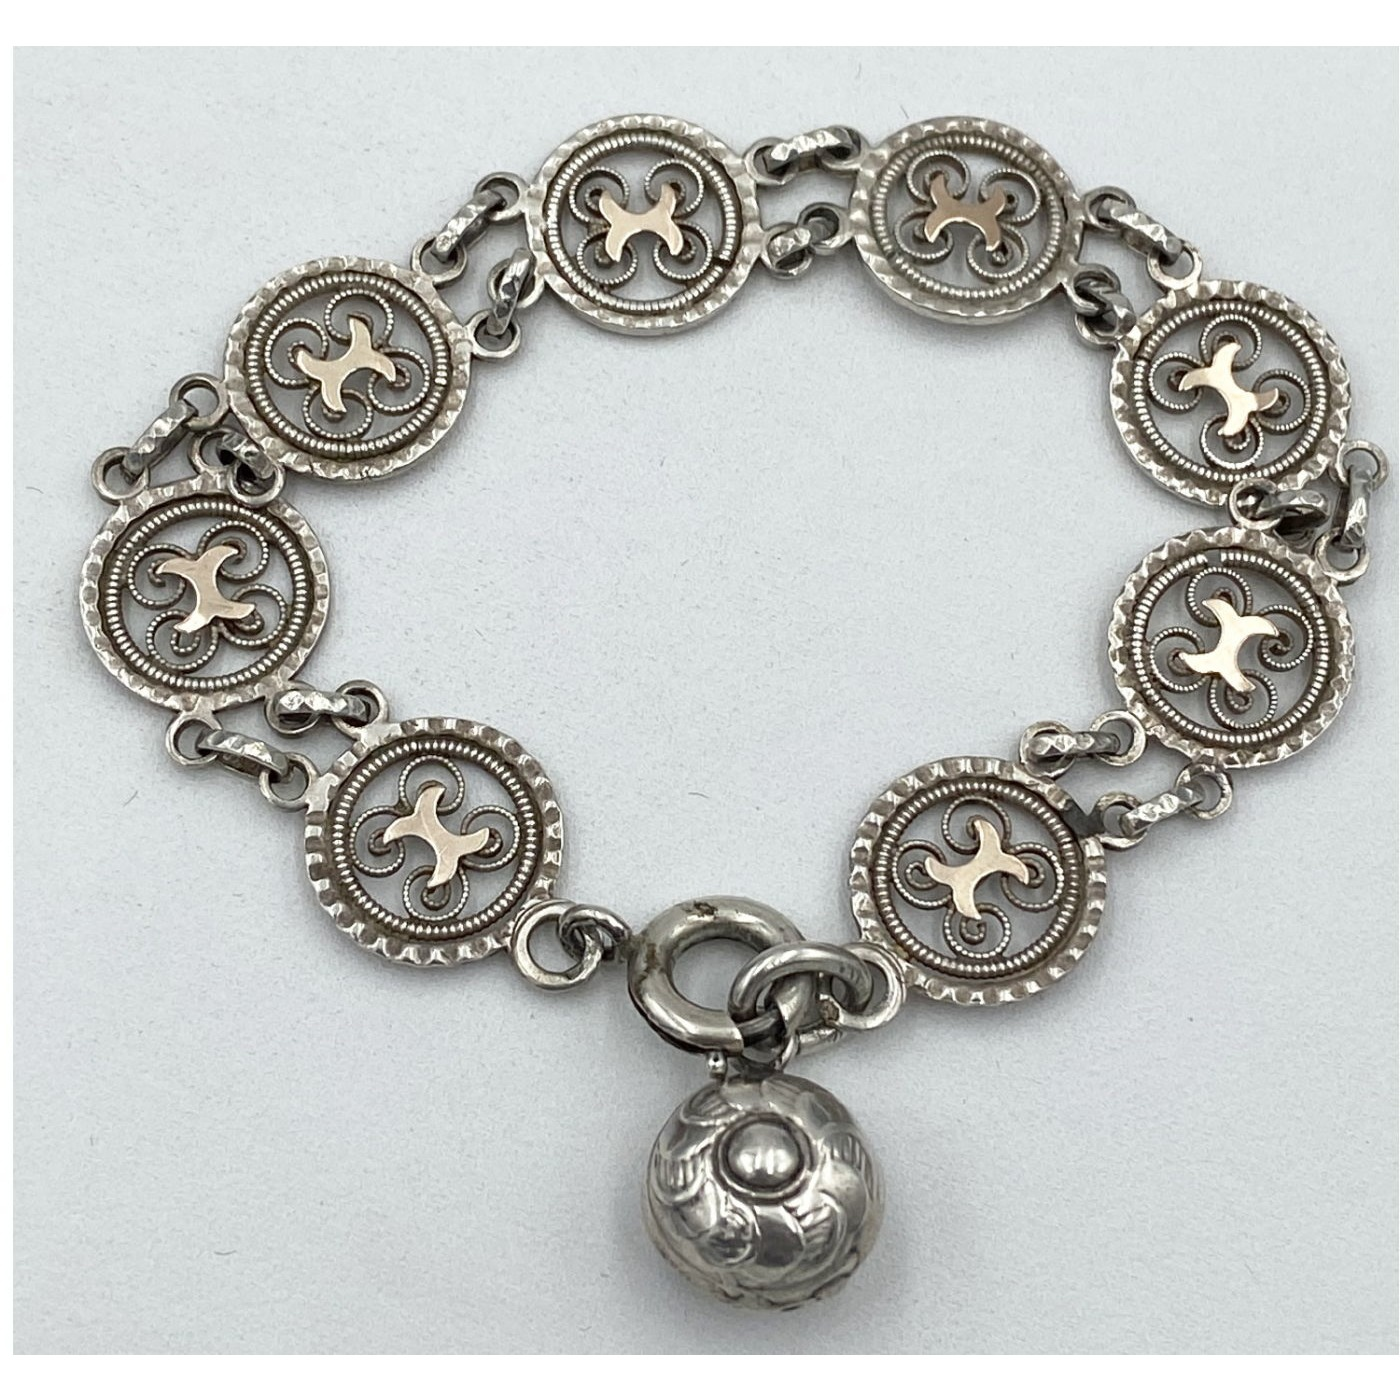 Intricate Links with Rose Gold Highlights Victorian English Silver Bracelet